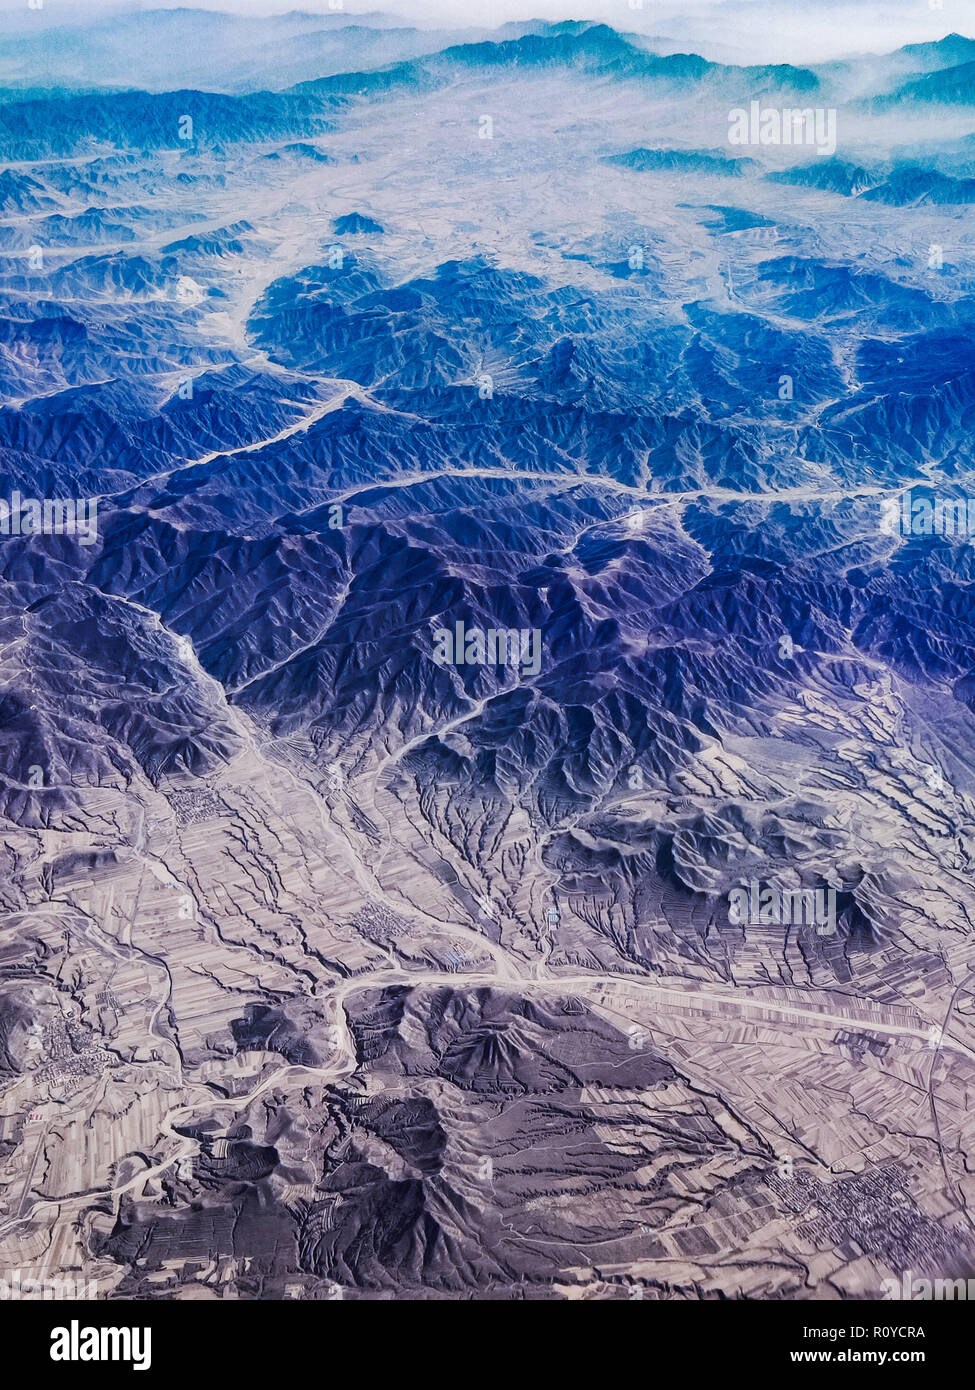 Shanxi, Shanxi, China. 8th Nov, 2018. Shanxi, CHINA-Aerial photography of mountains in north China's Shanxi Province. Credit: SIPA Asia/ZUMA Wire/Alamy Live News - Stock Image